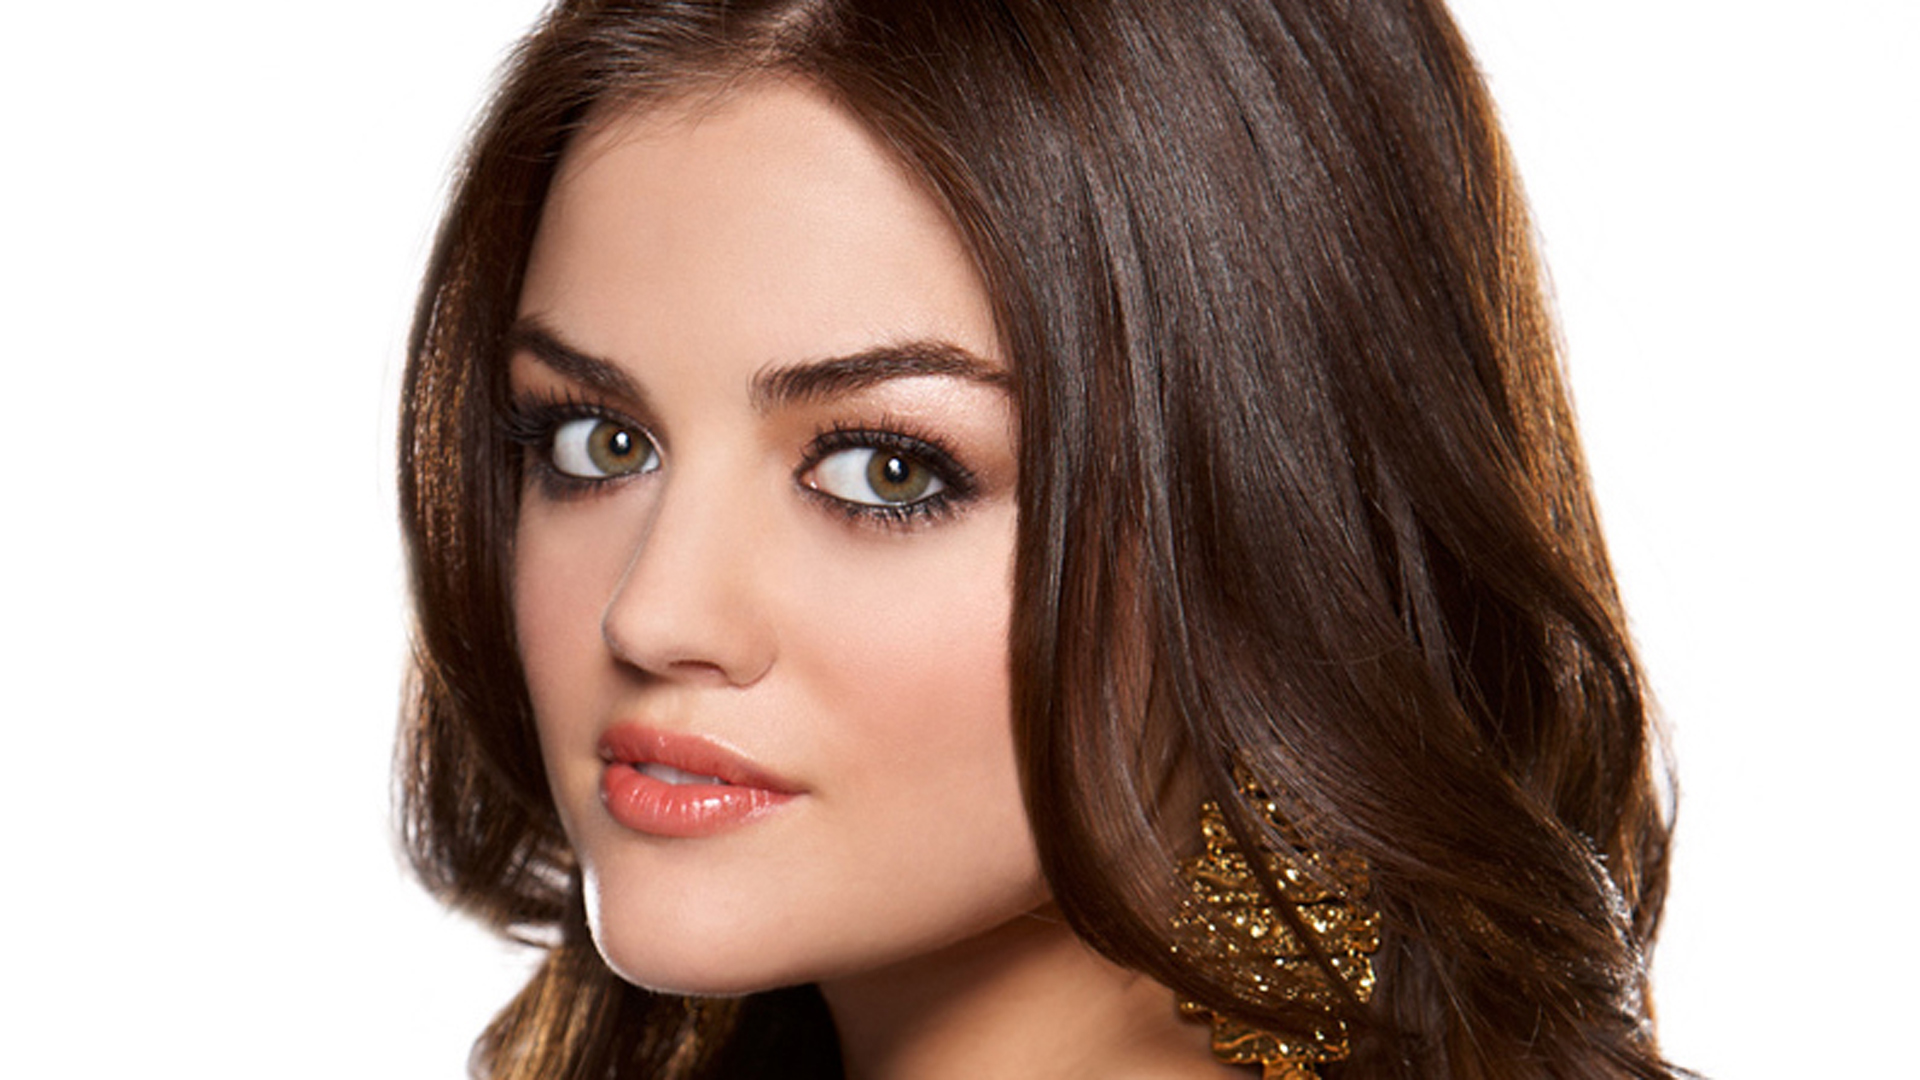 lucy hale age - HD1920×1080